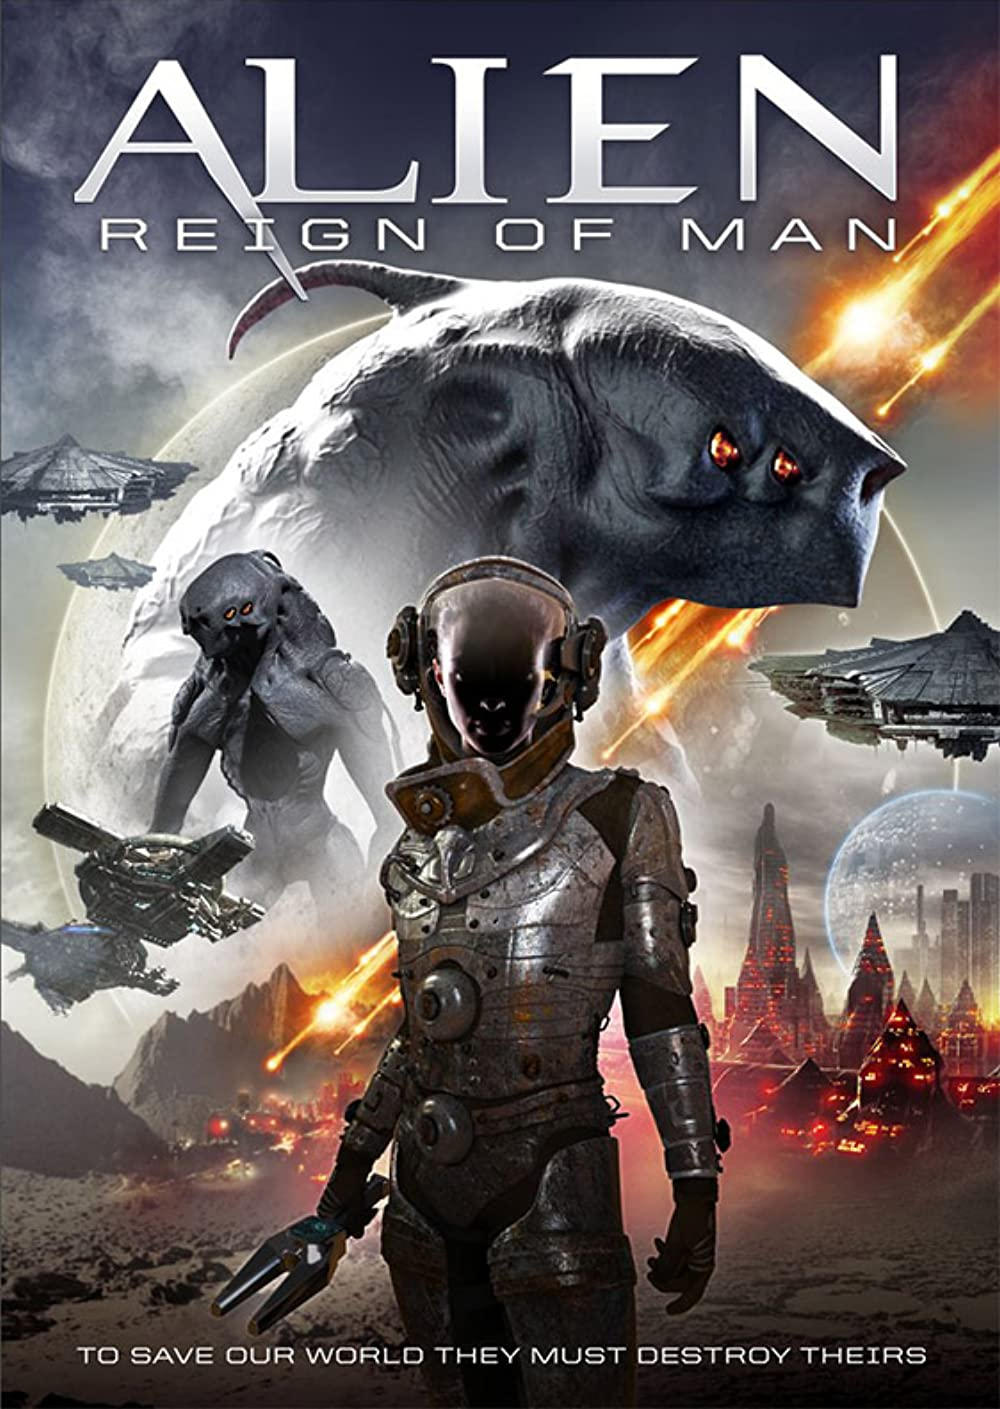 Alien Reign of Man 2017 Hindi Dual Audio 720p HDRip 800MB Download